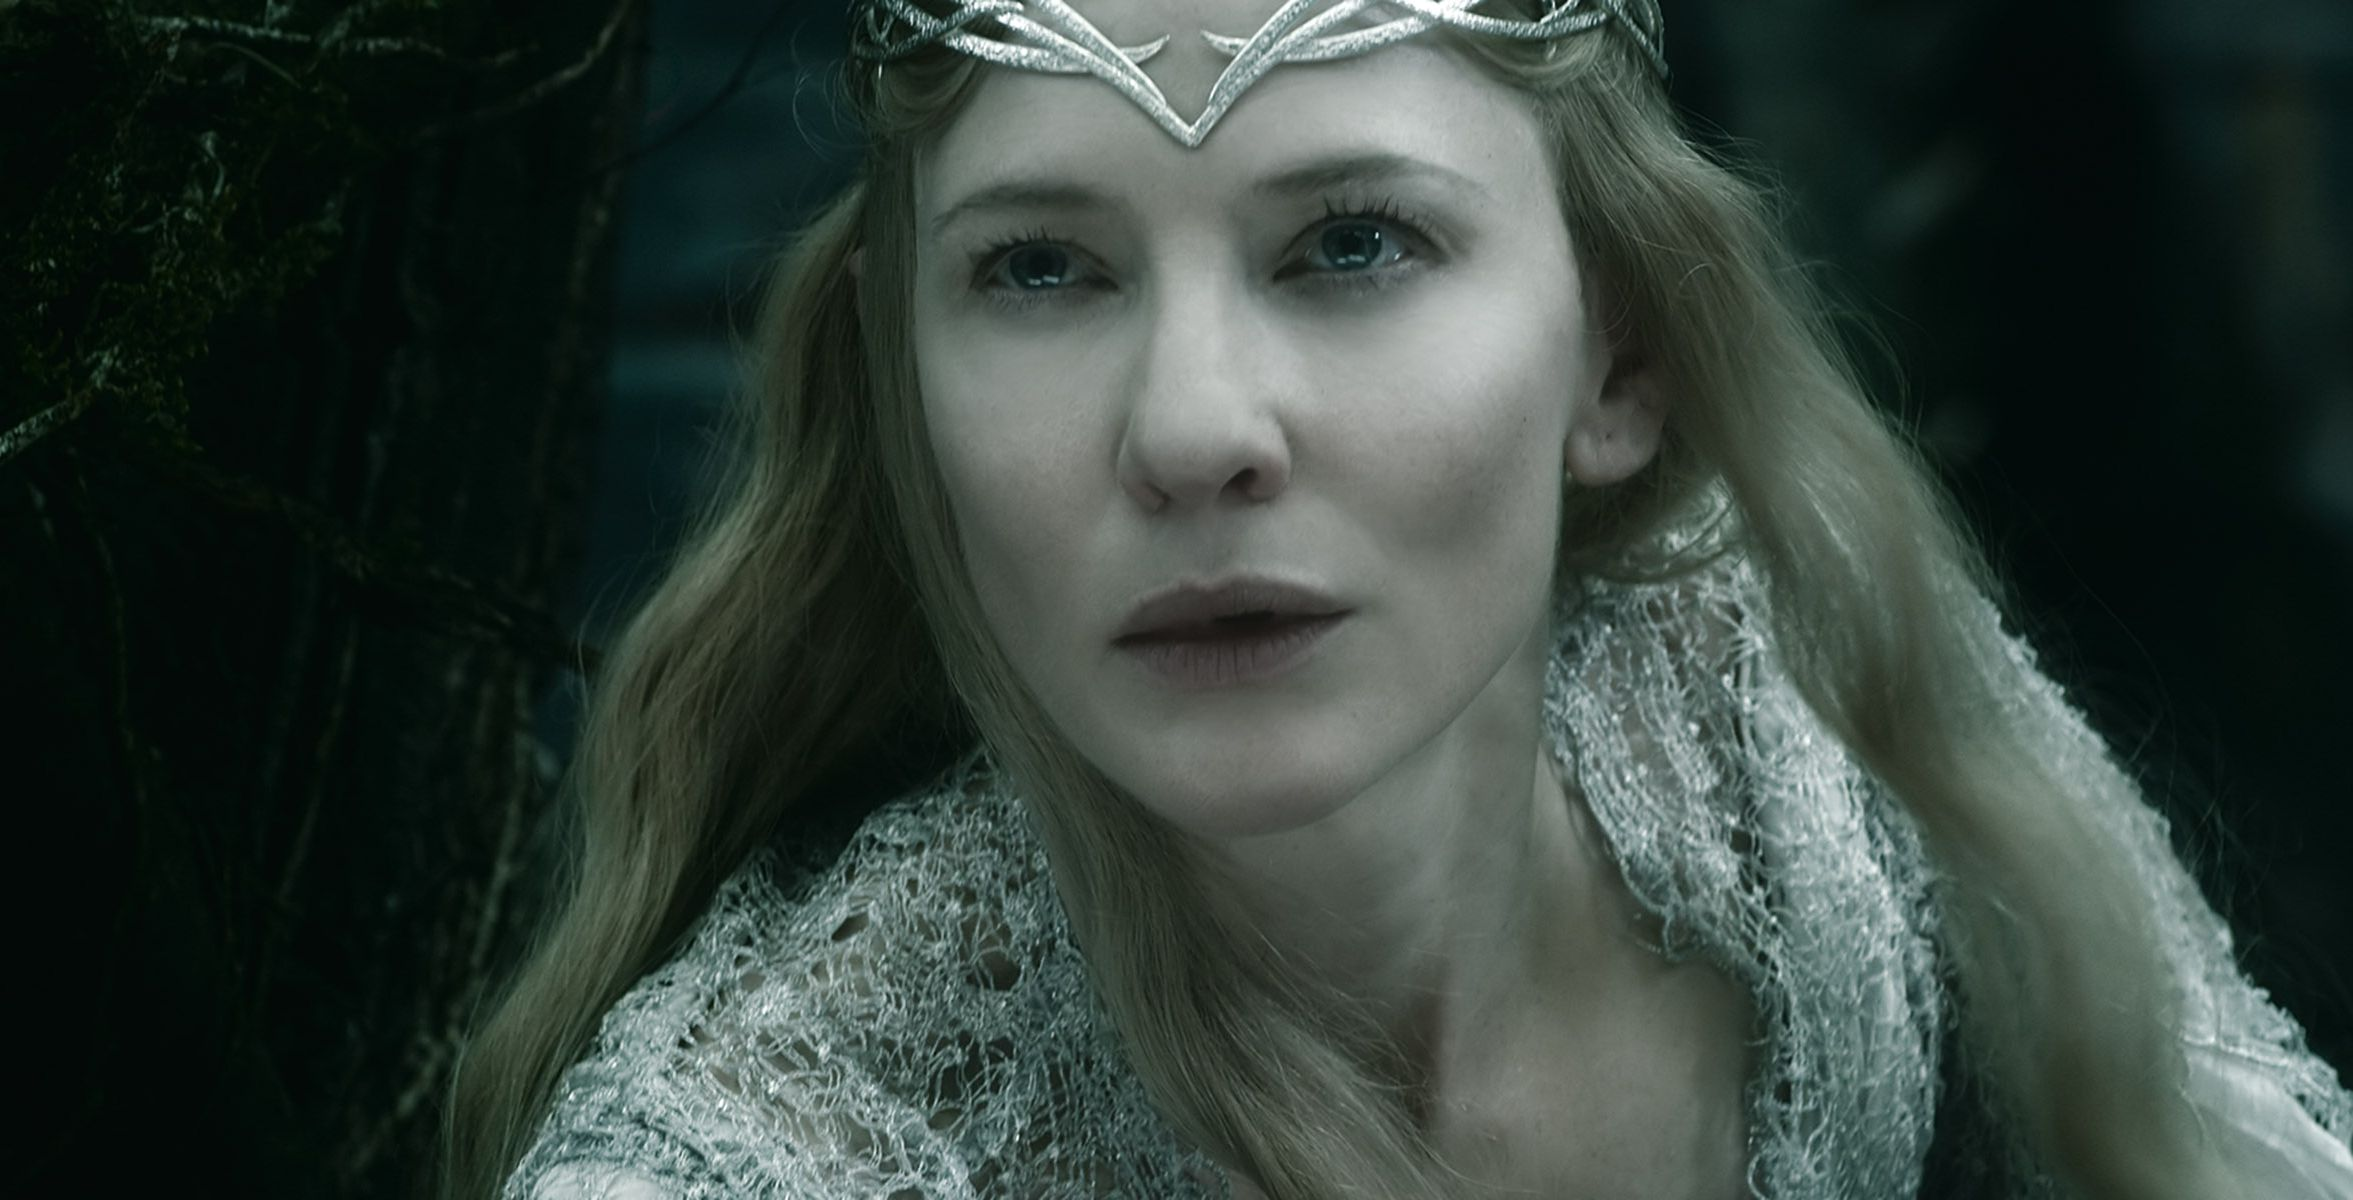 Cate Blanchett as Galadriel close-up - The Battle of the ... Cate Blanchett Movies